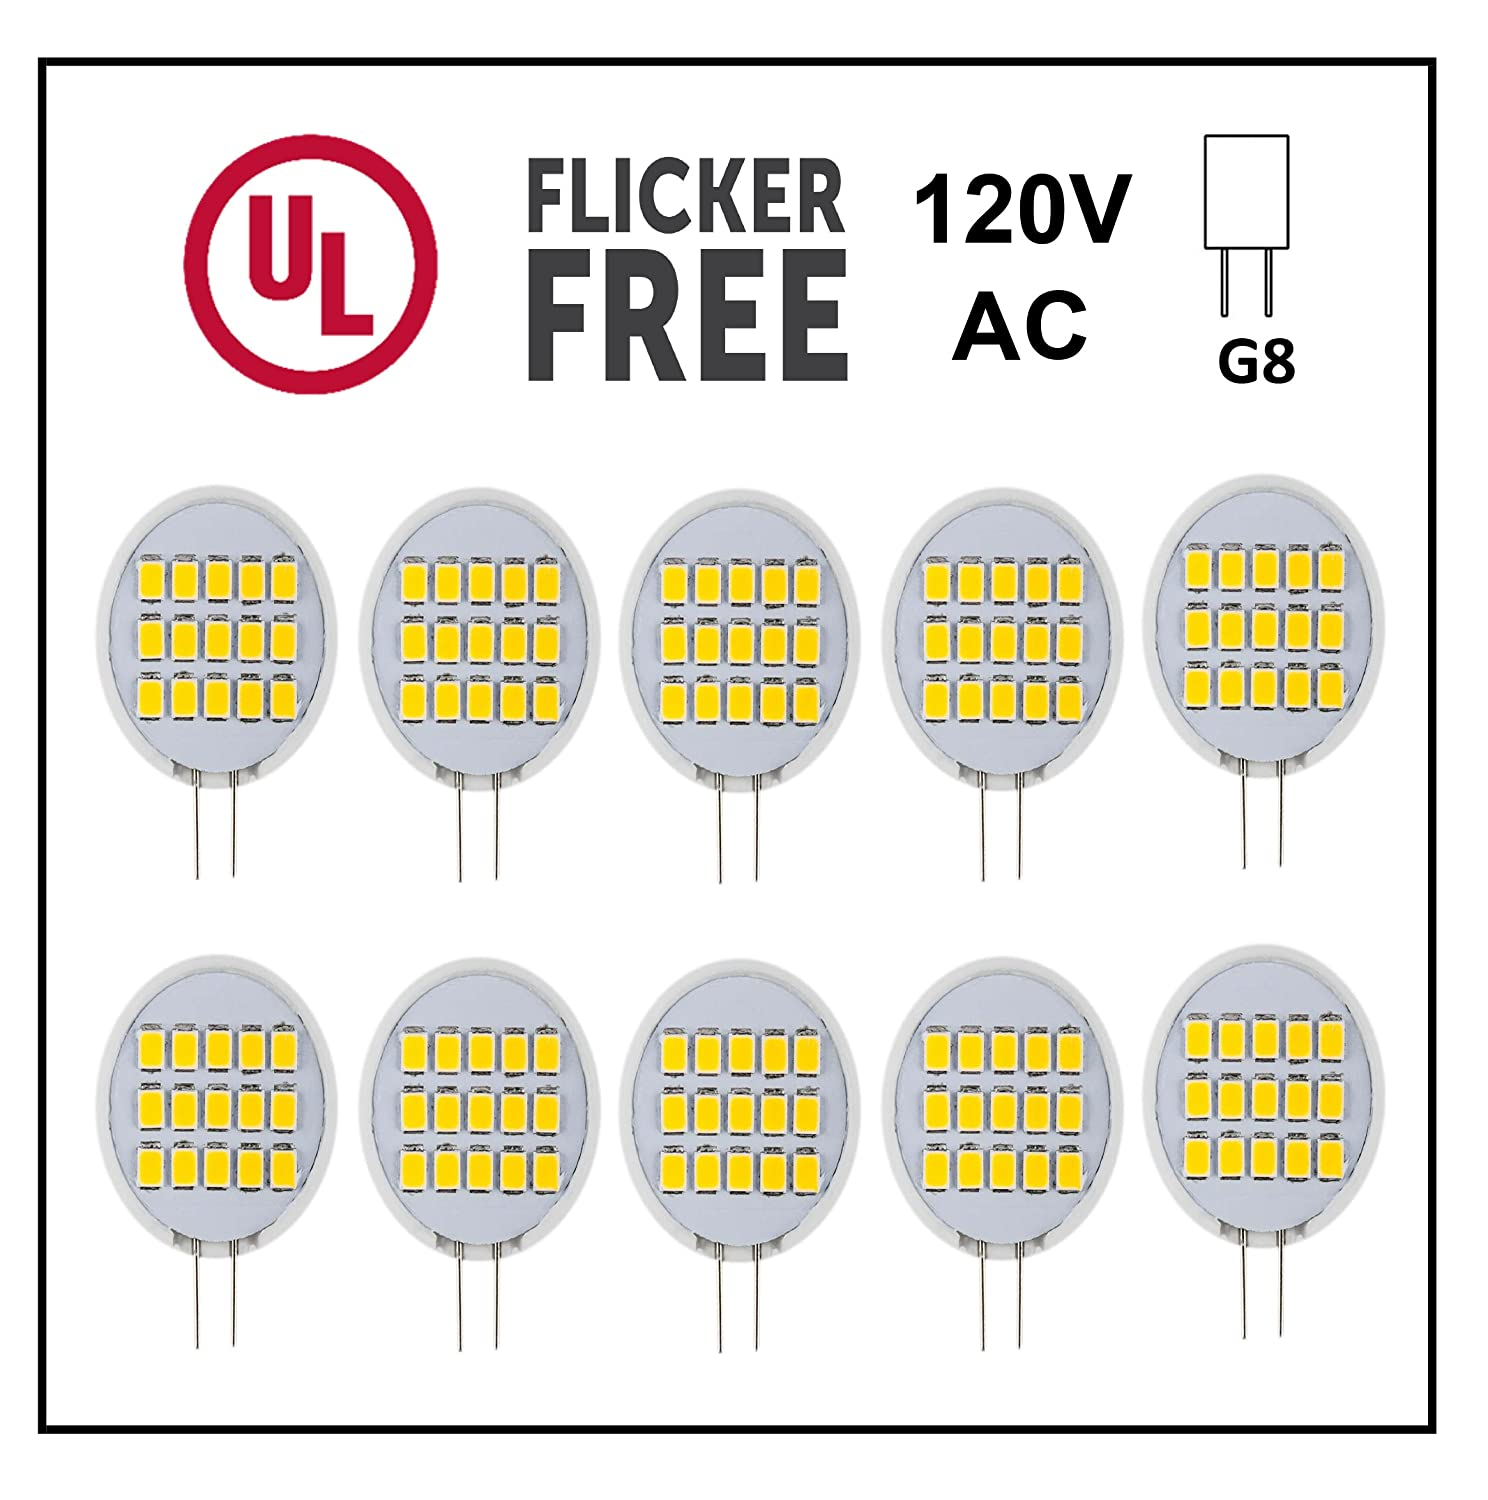 NOT Dimmable Ceramic Sunflower CBConcept UL-Listed Side-Pin G8 LED Light Bulb Pure White 6000K 10-Pack 20W Equivalent,Under Cabinet//Counter Puck Kitchen Light UL.LEDG8-SP-3W-PW-10 180/°Beam Angle 1.6 Watt 200 Lumen